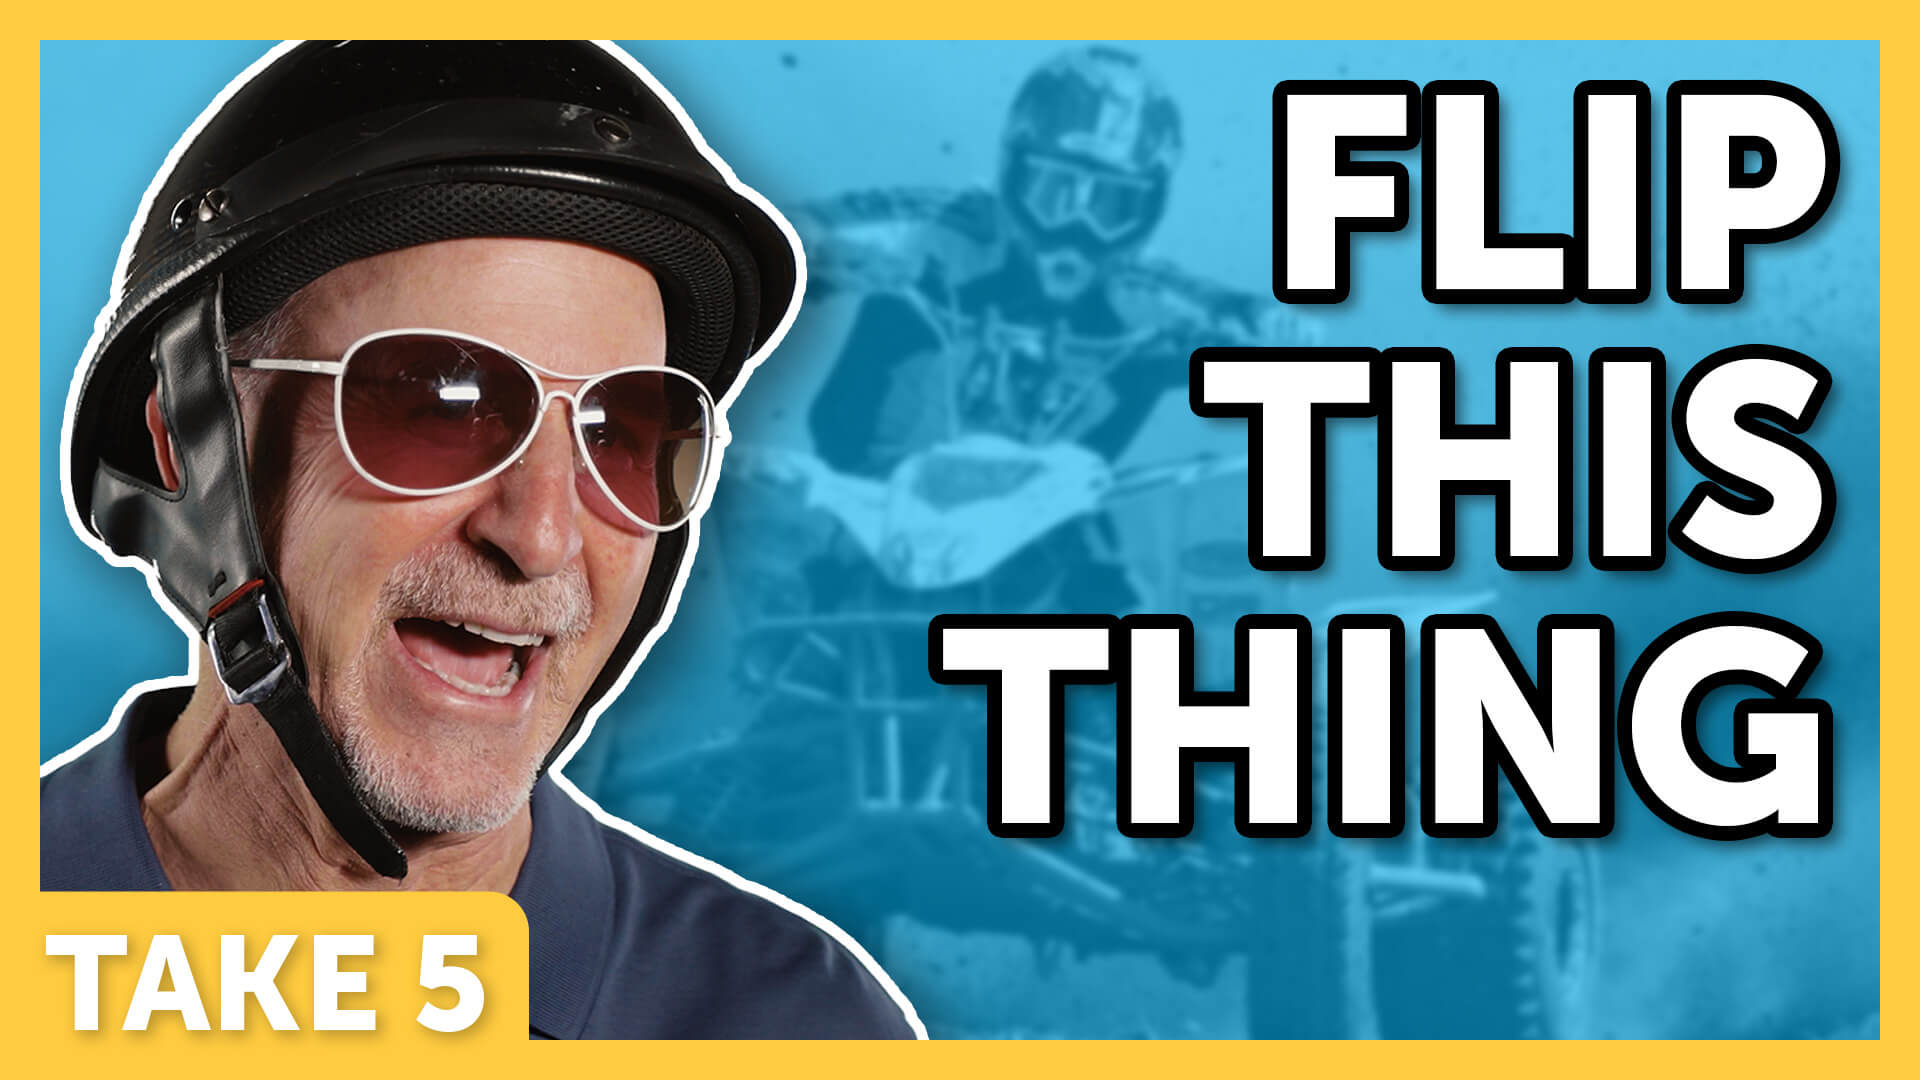 Flip This Thing - Laugh-A-Minute with Phil Callaway | Laugh Again TV